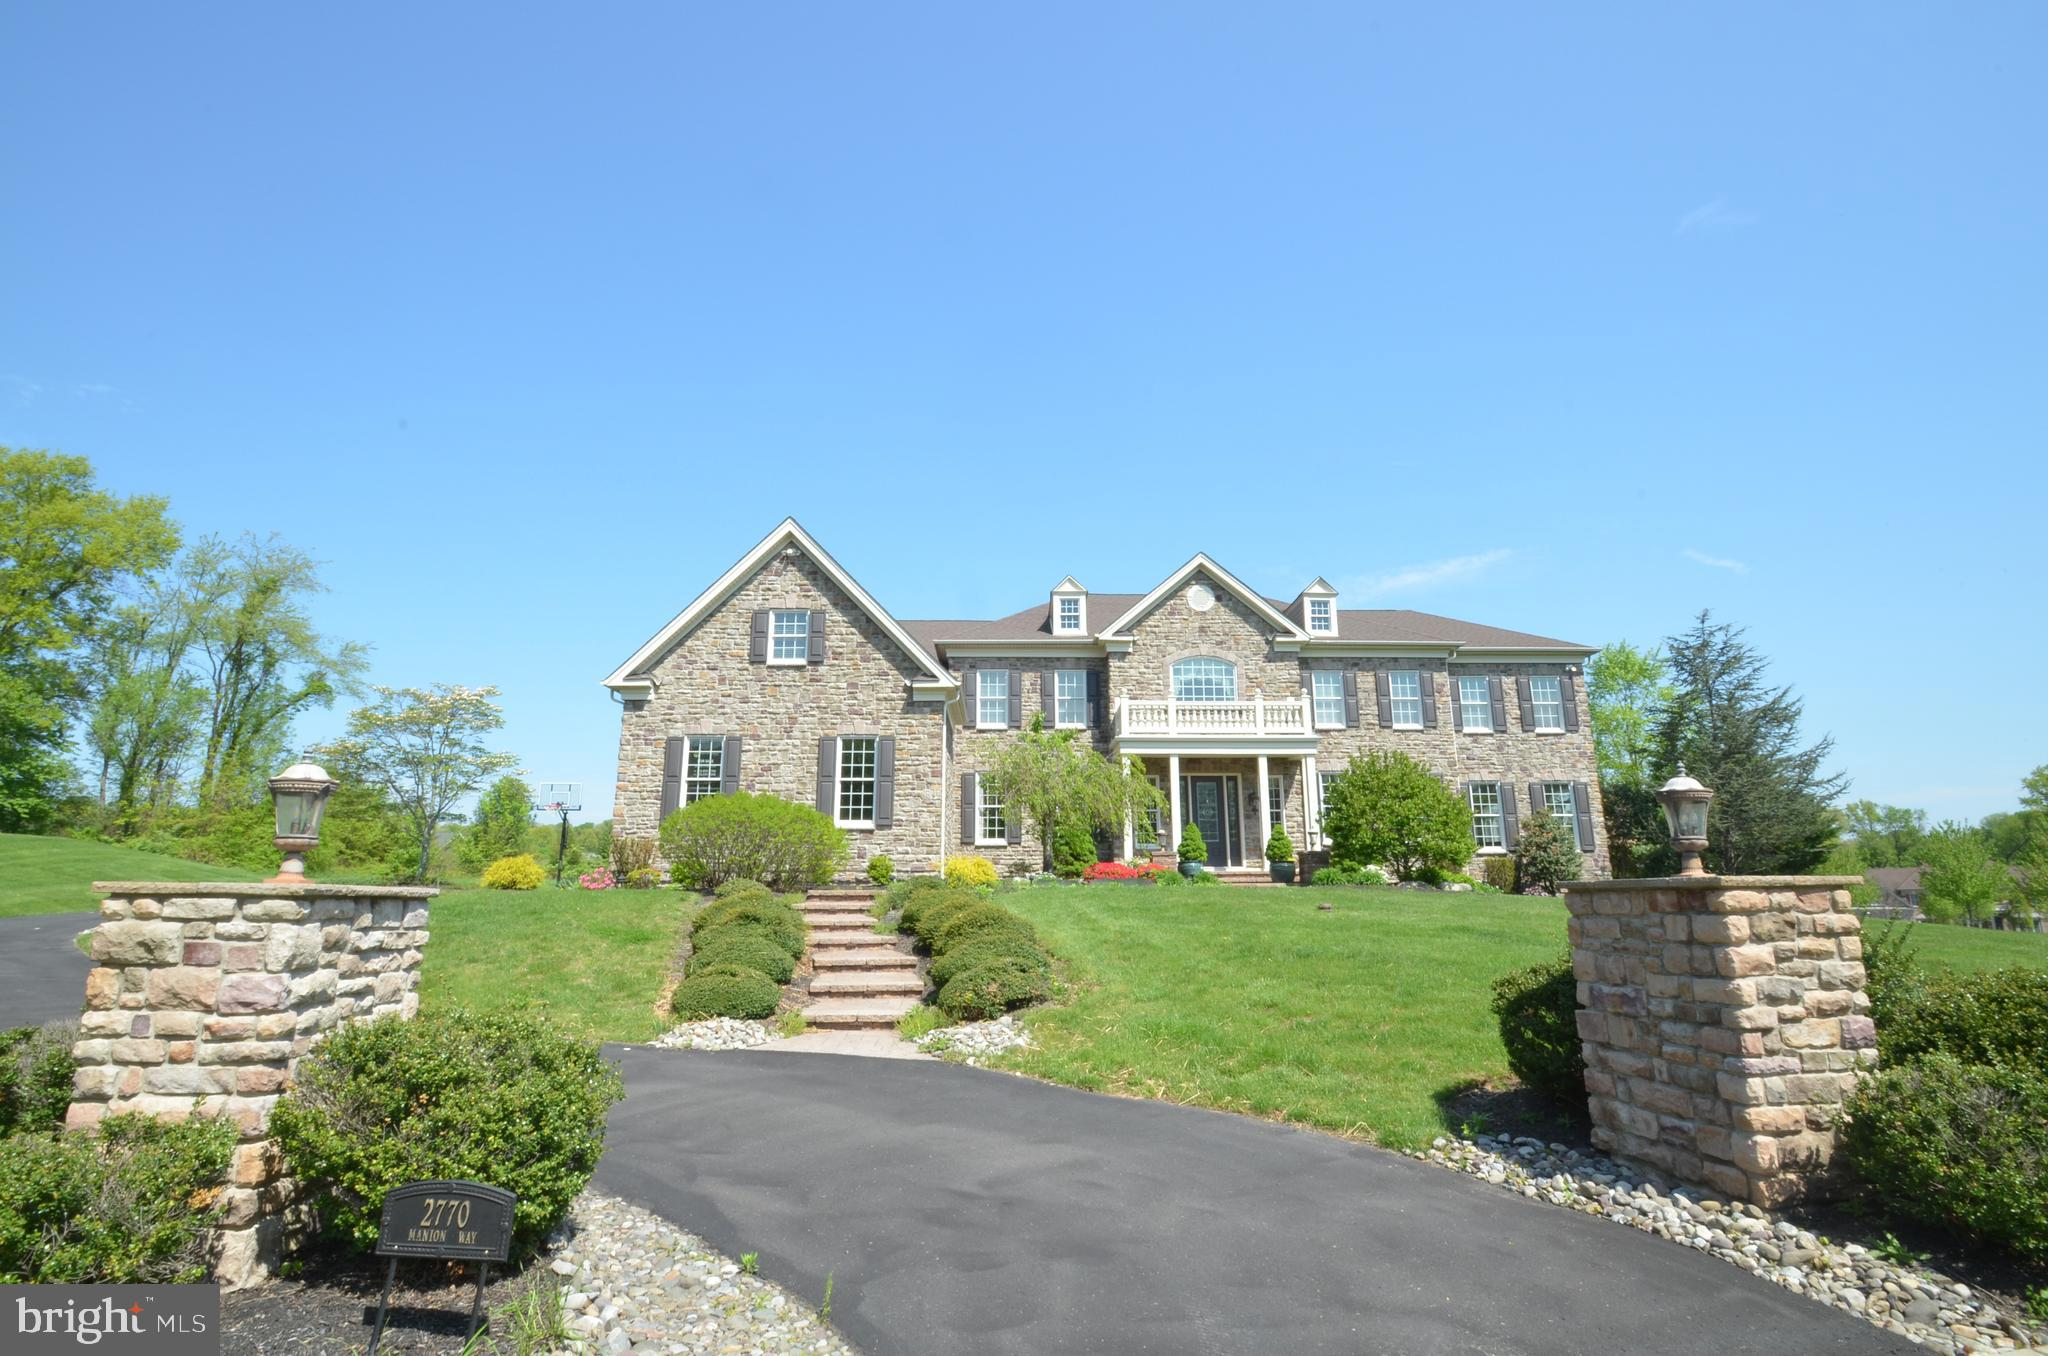 2770 MANION WAY, DOYLESTOWN, PA 18901